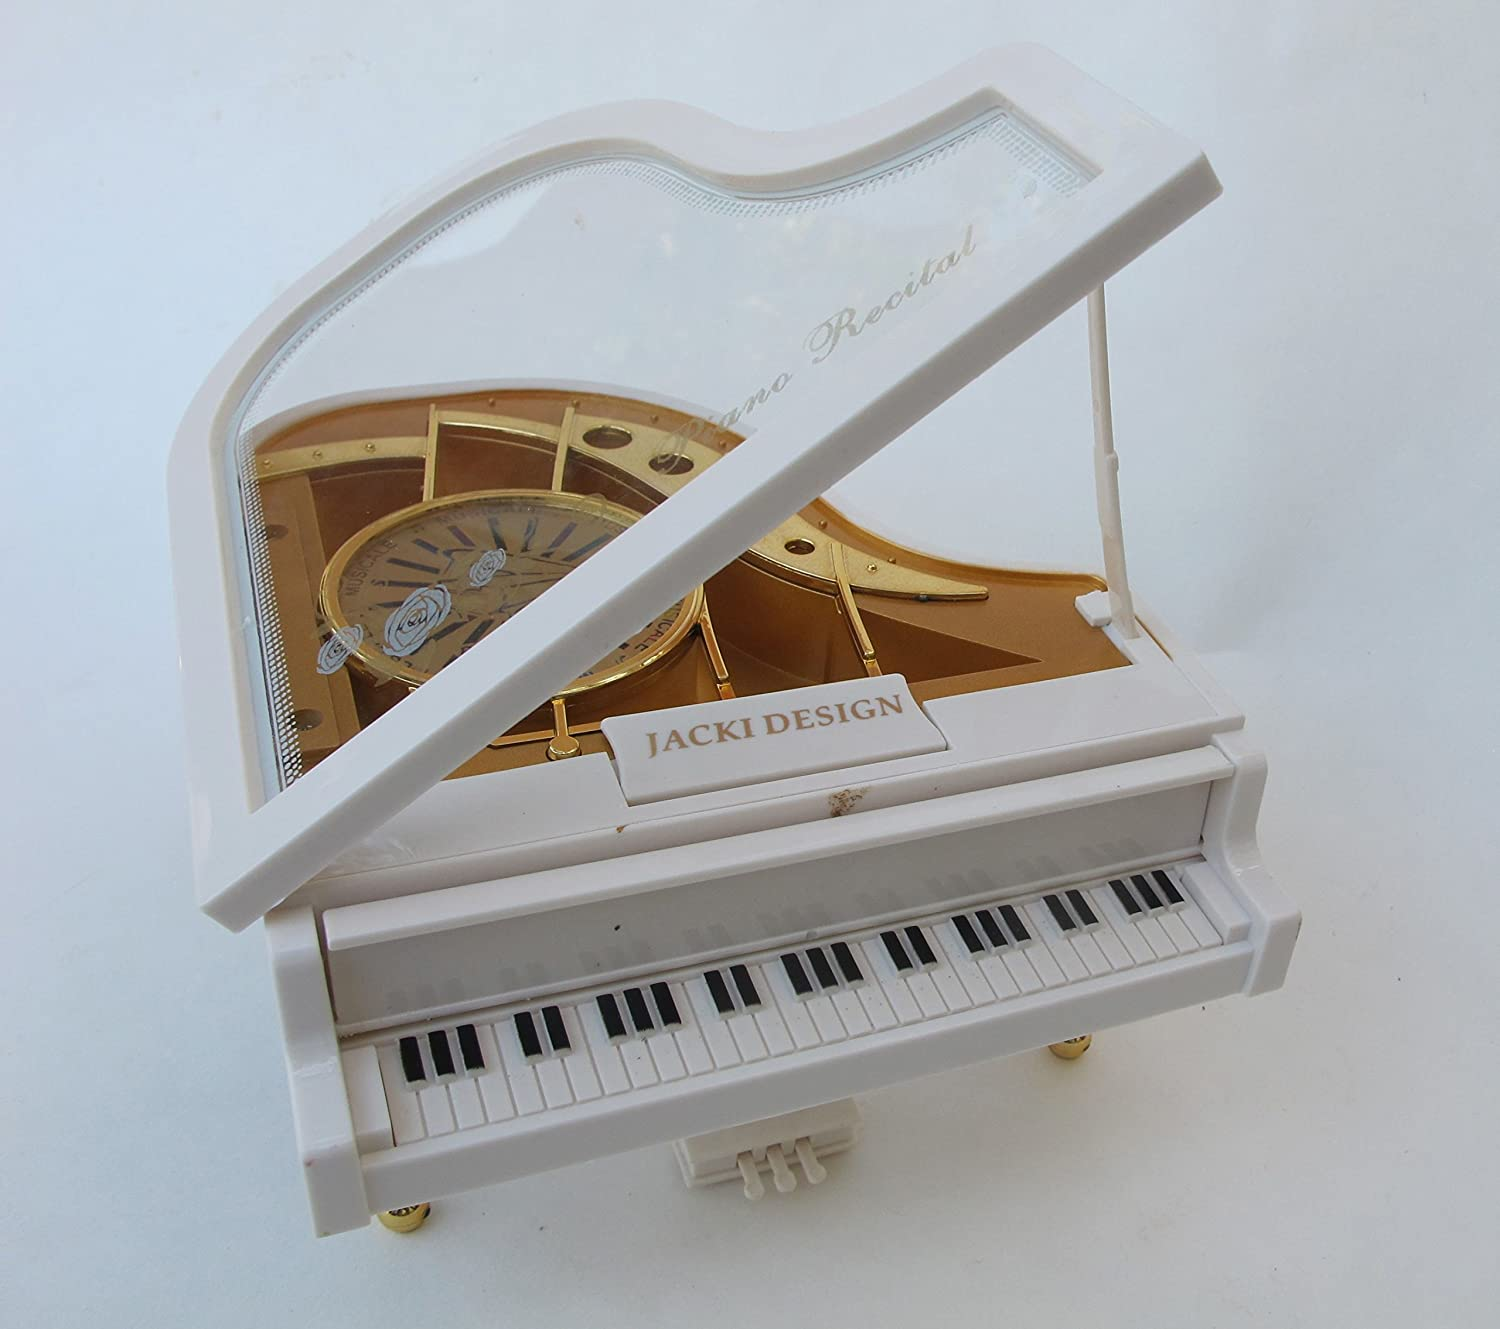 CHRISTMAS GIFT,Holiday Gift,Piano Ballerina Music Box, Father, Grandfather, Mom, Grandma, Birthday gift, Music, White Piano Ballerina Music Box